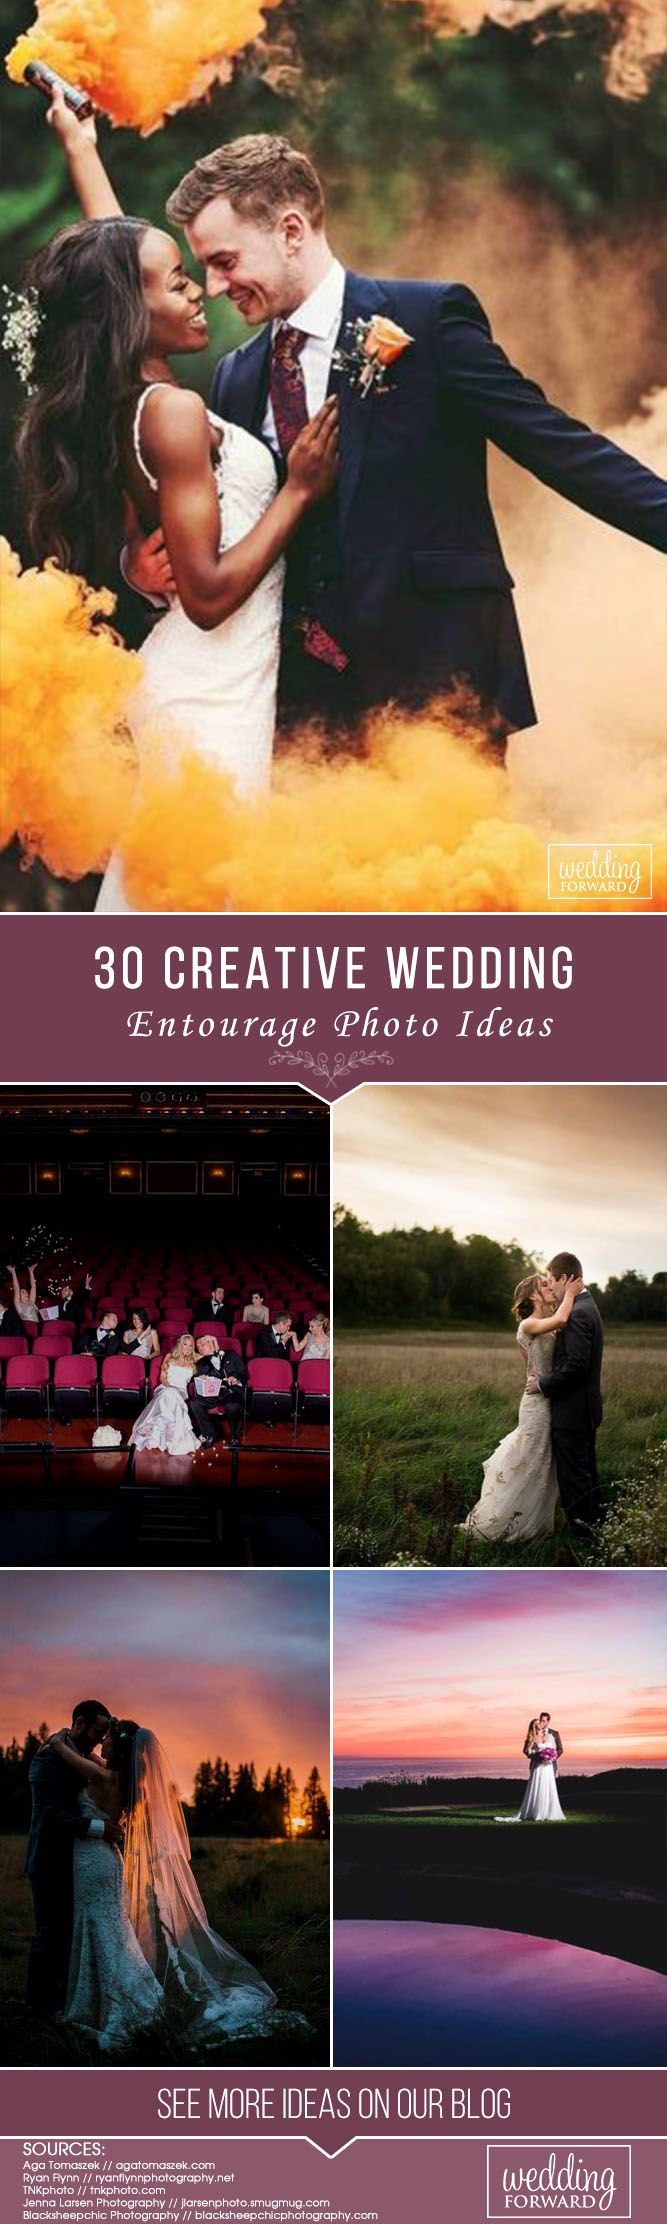 Weddings are always a fun way to bring together all the people that have shaped the lives of the newlyweds-to-be. Whether you're getting married soon or photographing a wedding pictorial yourself, you'll find fresh wedding entourage photo ideas in this collection.  #wedding #bride